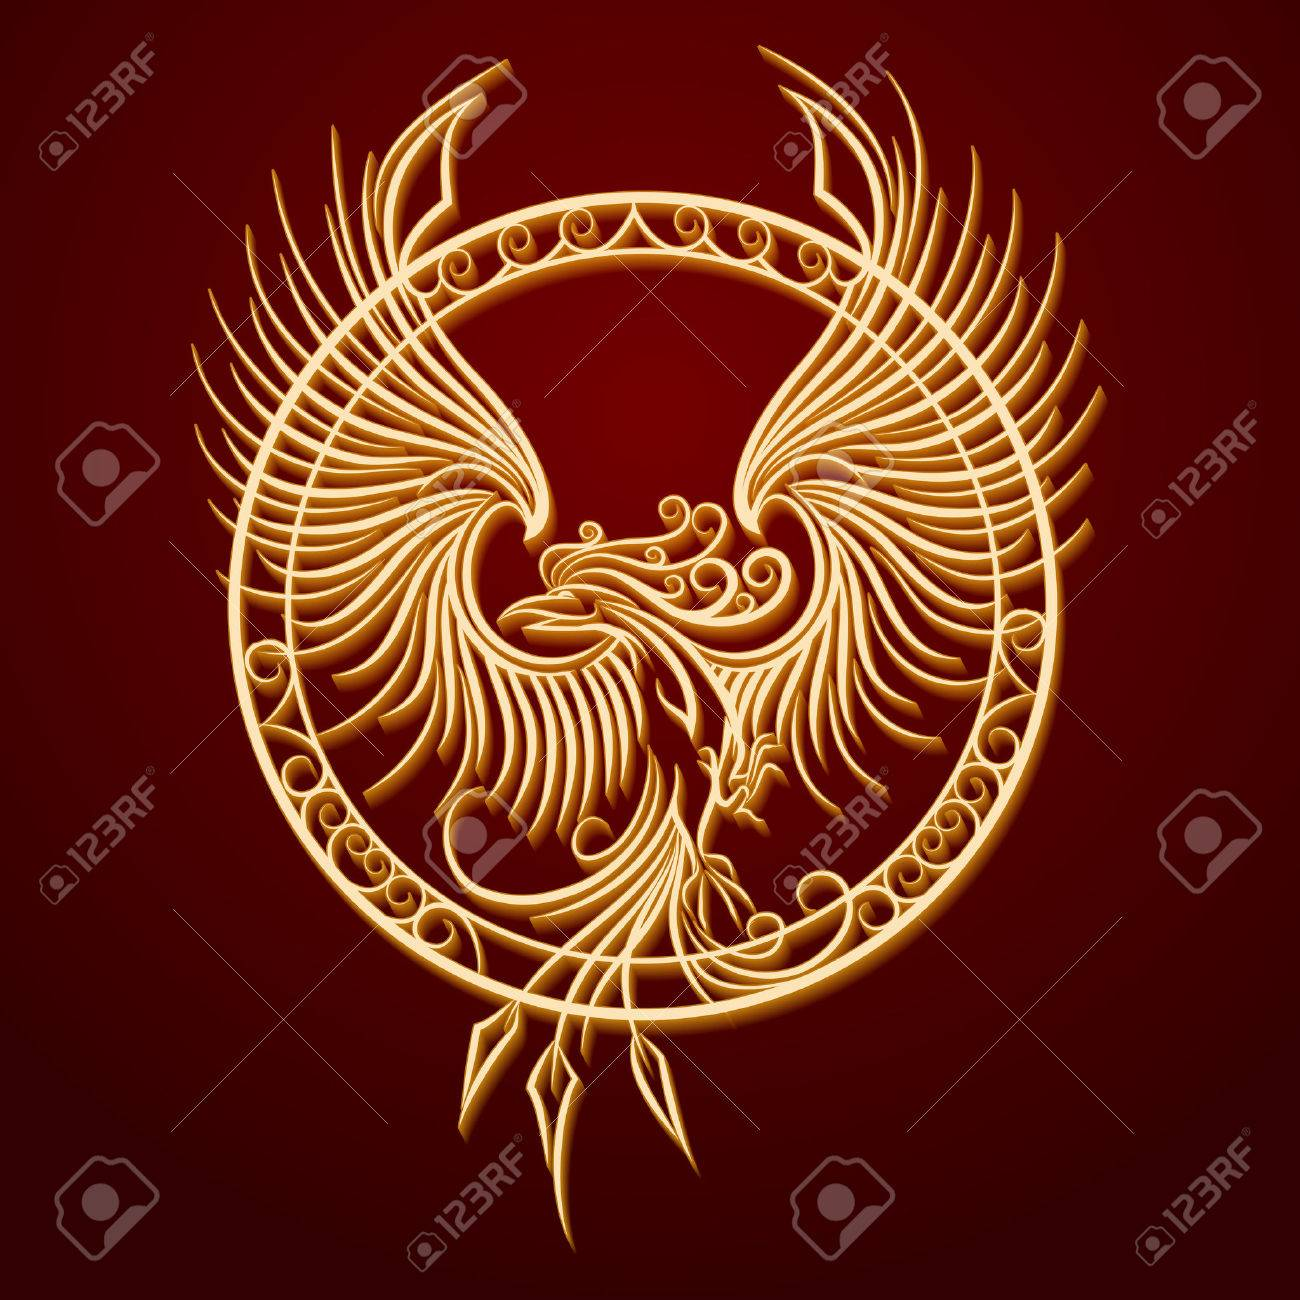 449092 ancient stock illustrations cliparts and royalty free phoenix bird with rising wings in a circle ancient symbol of revival biocorpaavc